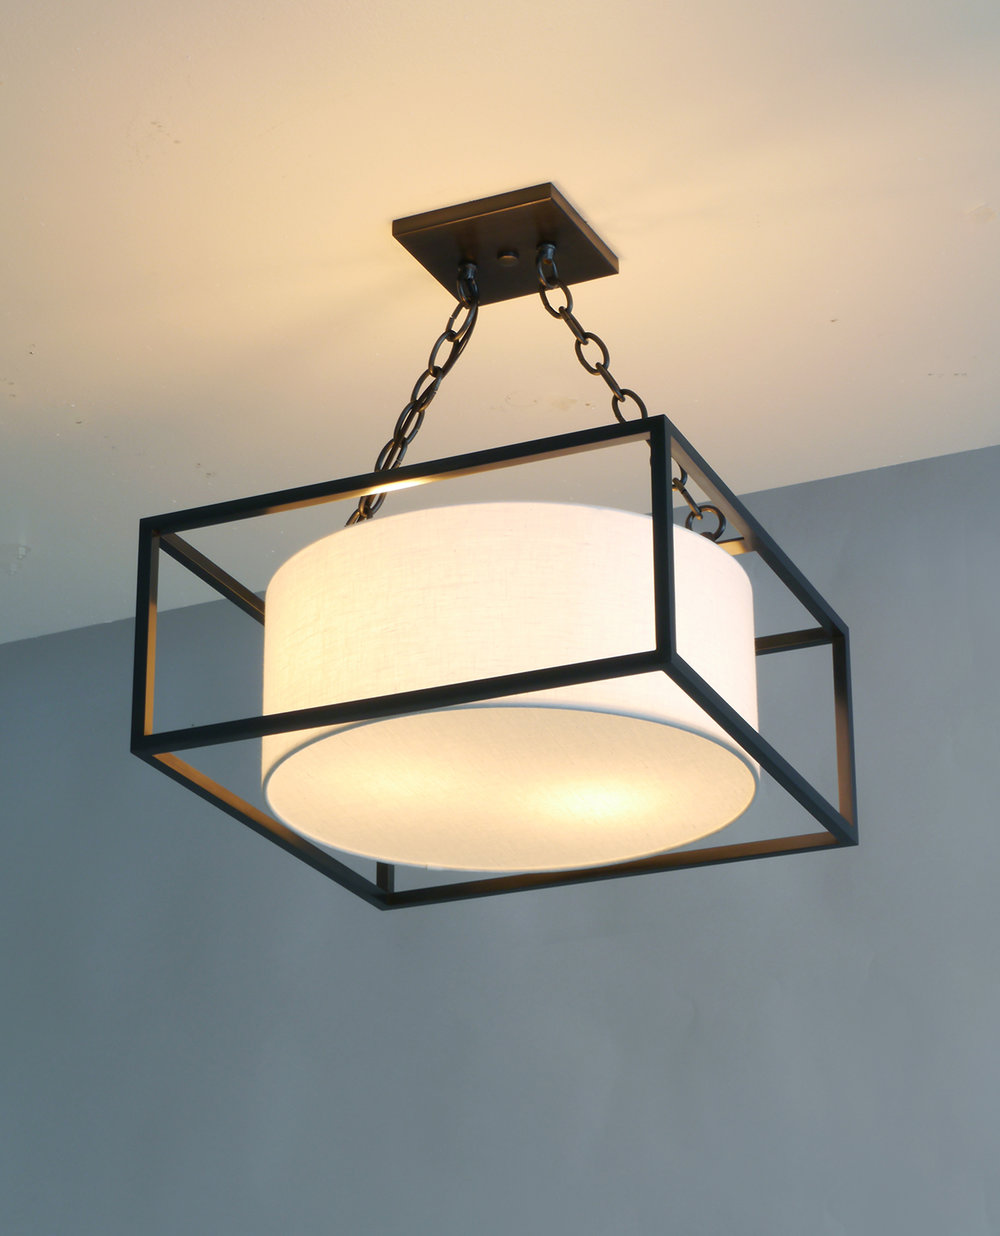 Boxed_C-169_Boxed Ceiling Fixture with tapered supsension_Black_ White.jpg